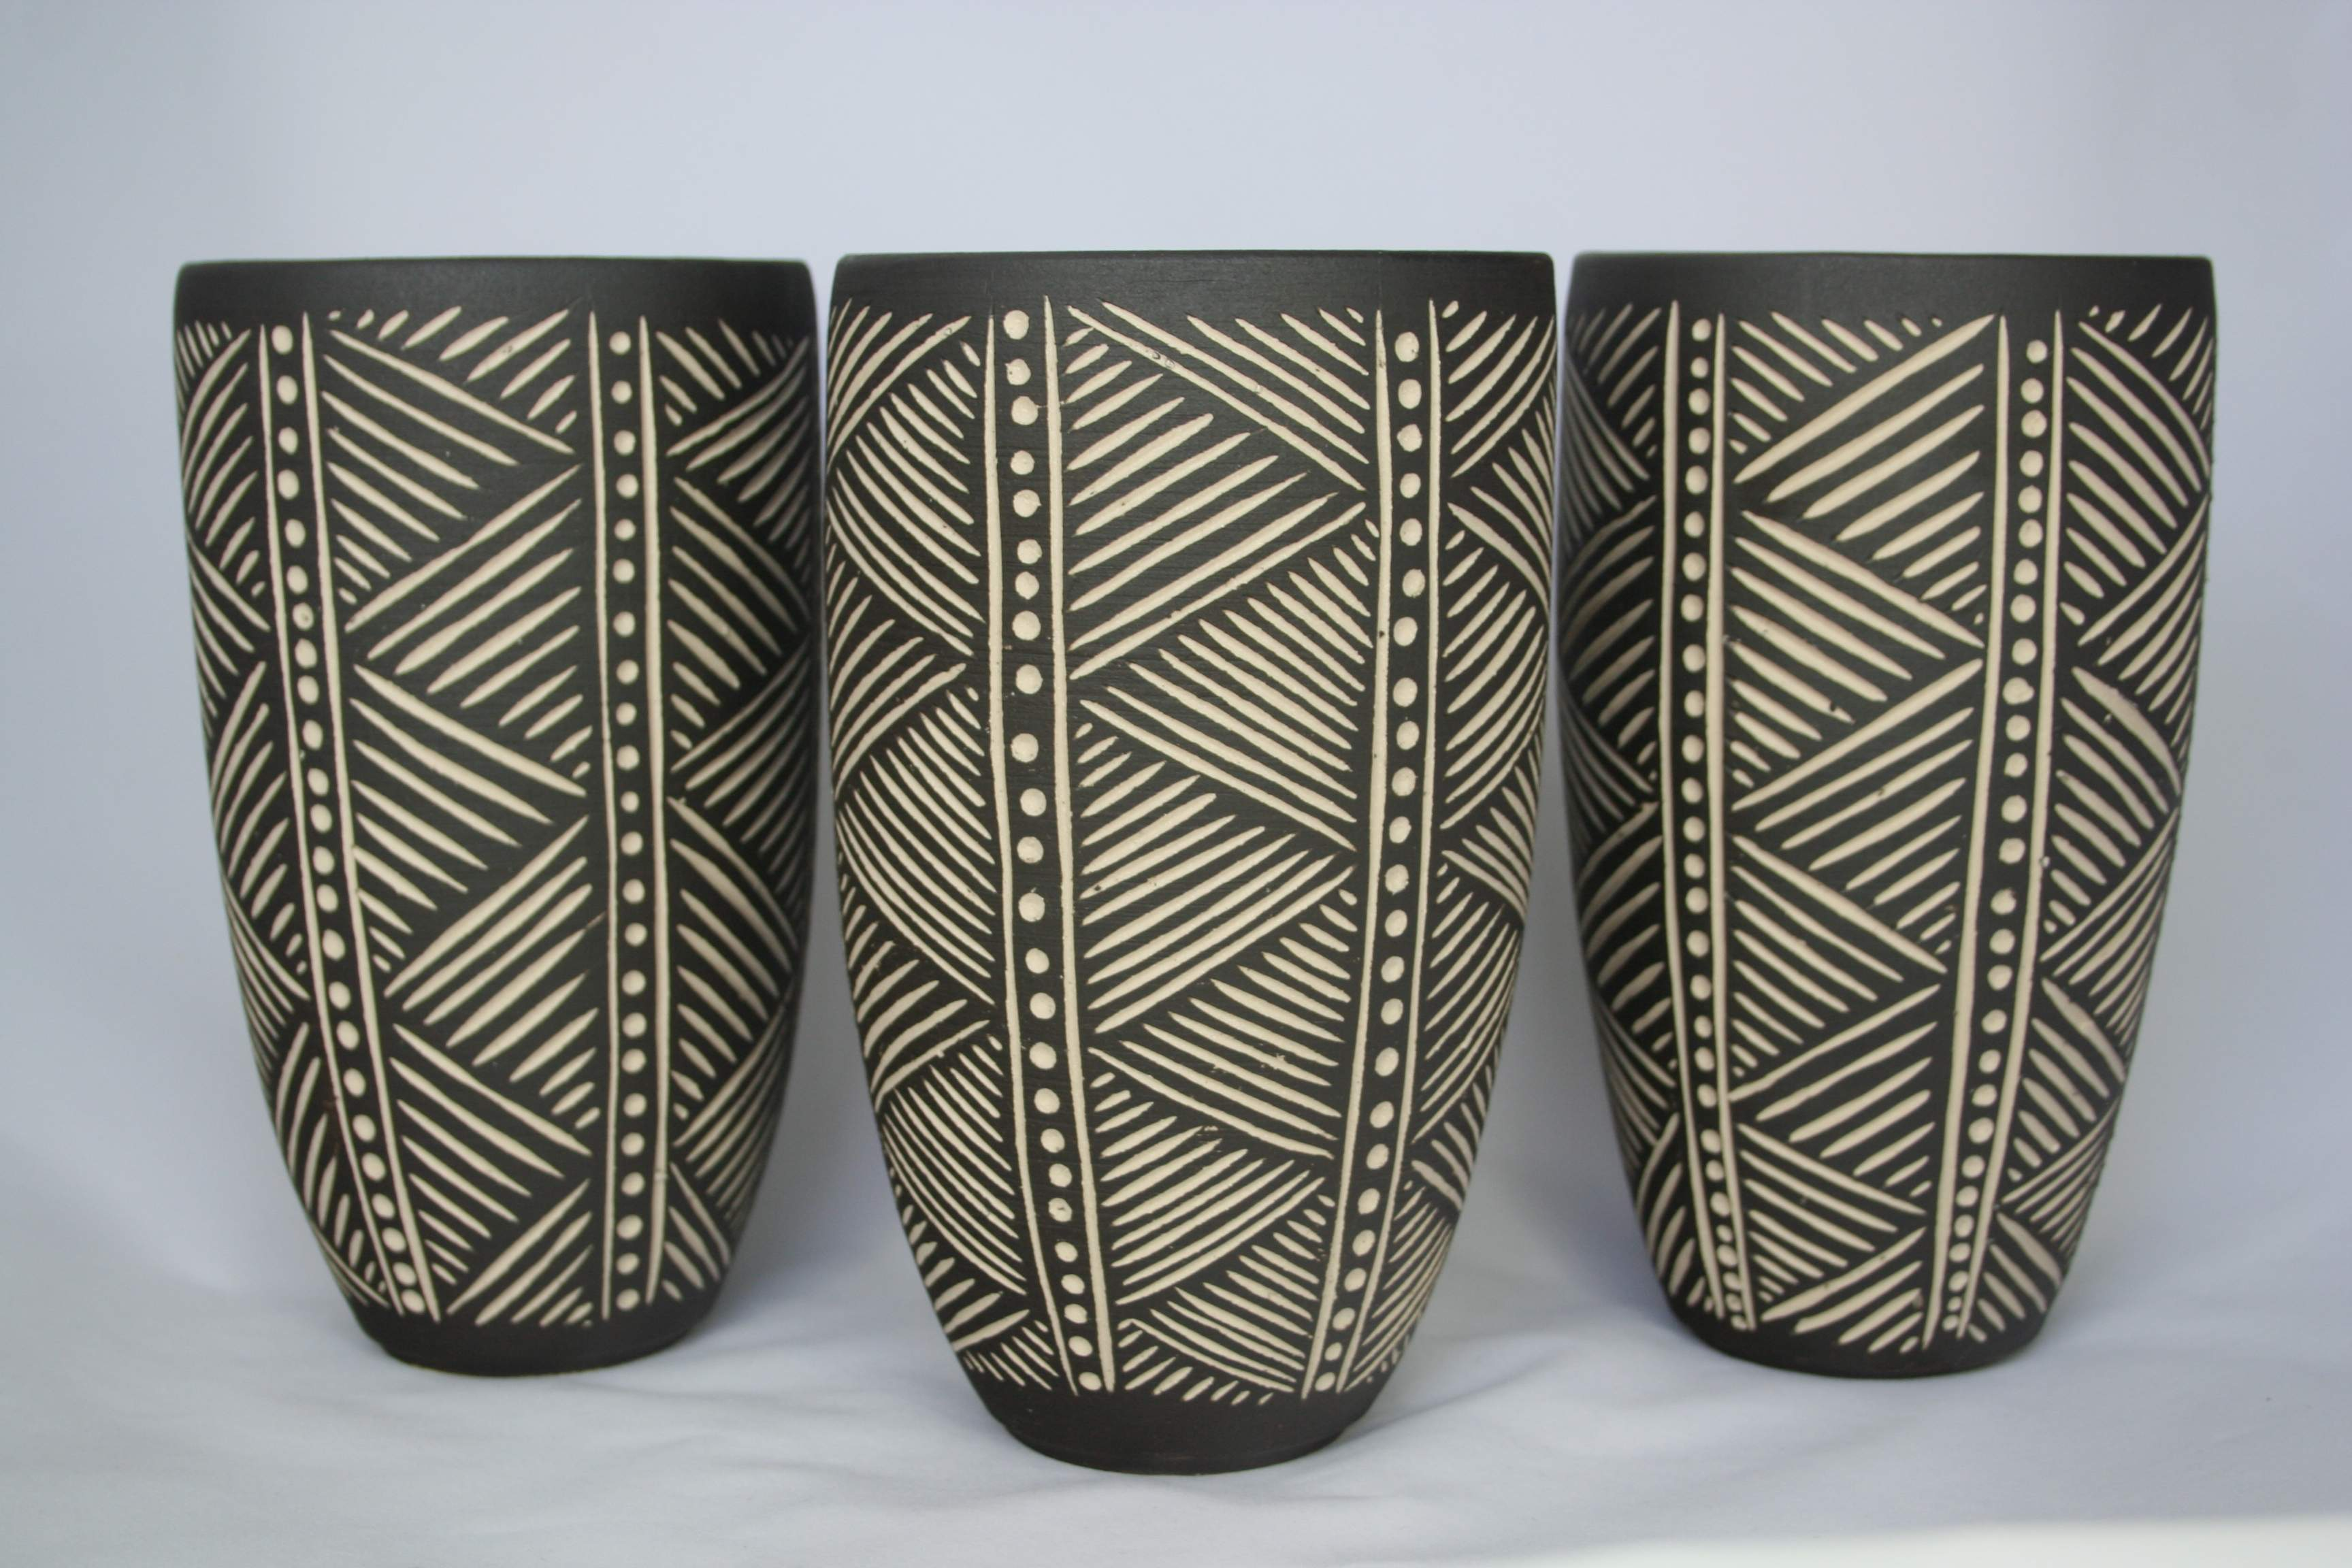 Sgraffito Trio by Demonpotters